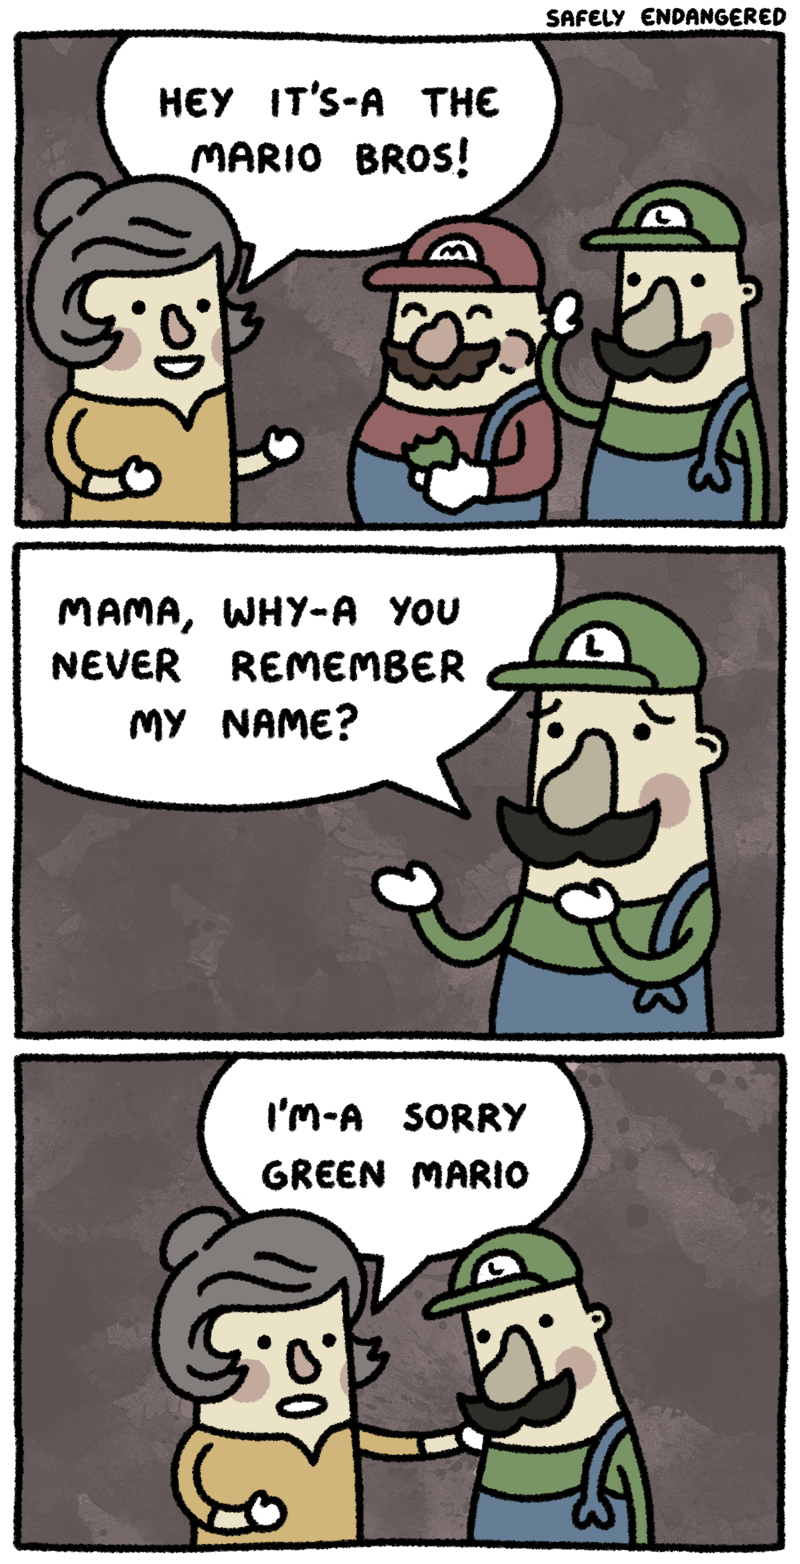 Sad,Super Mario bros,web comics